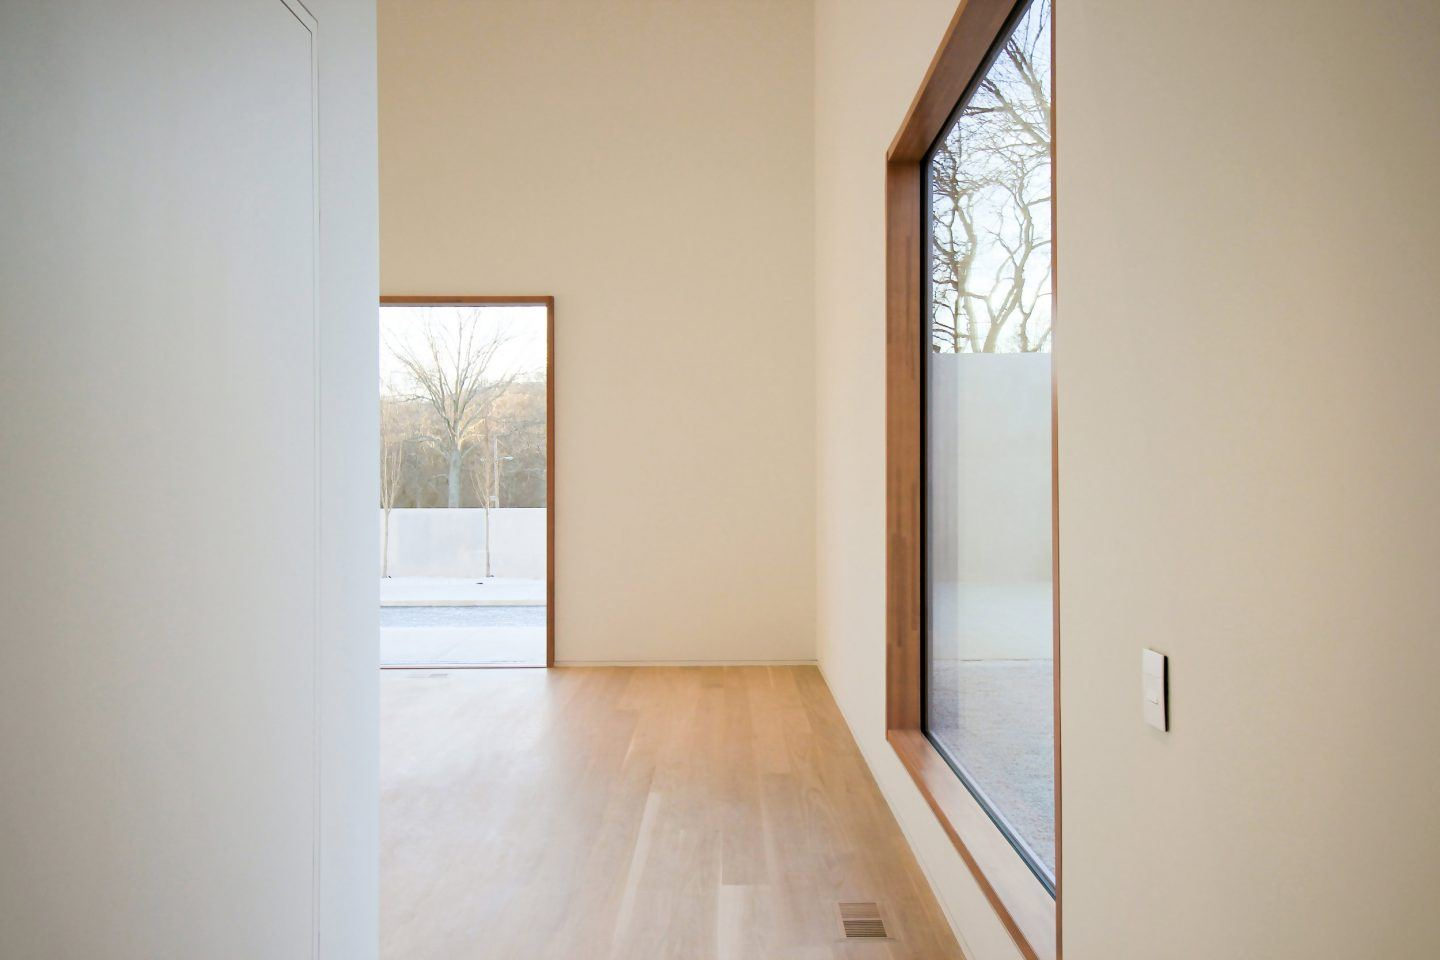 IGNANT-Architecture-Studio-Yuda-Lane-B-16